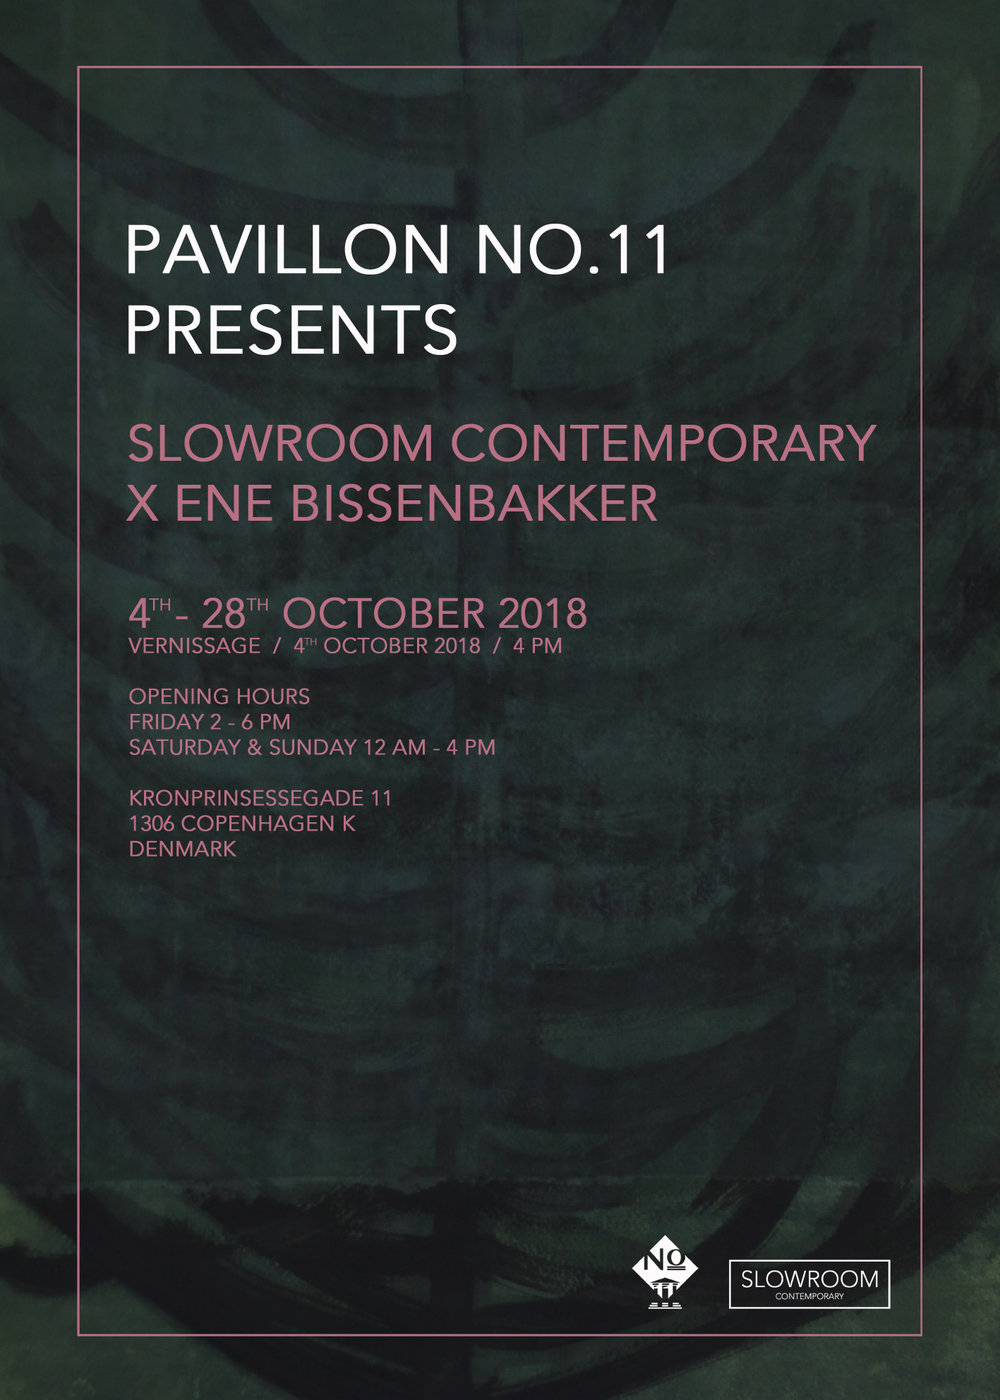 Ene bissenbakker / Solo exhibition - In collaboration with Pavillon No. 11, we proudly present a solo exhibition with Danish artist Ene Bissenbakker.For more information go to the Facebook event here.